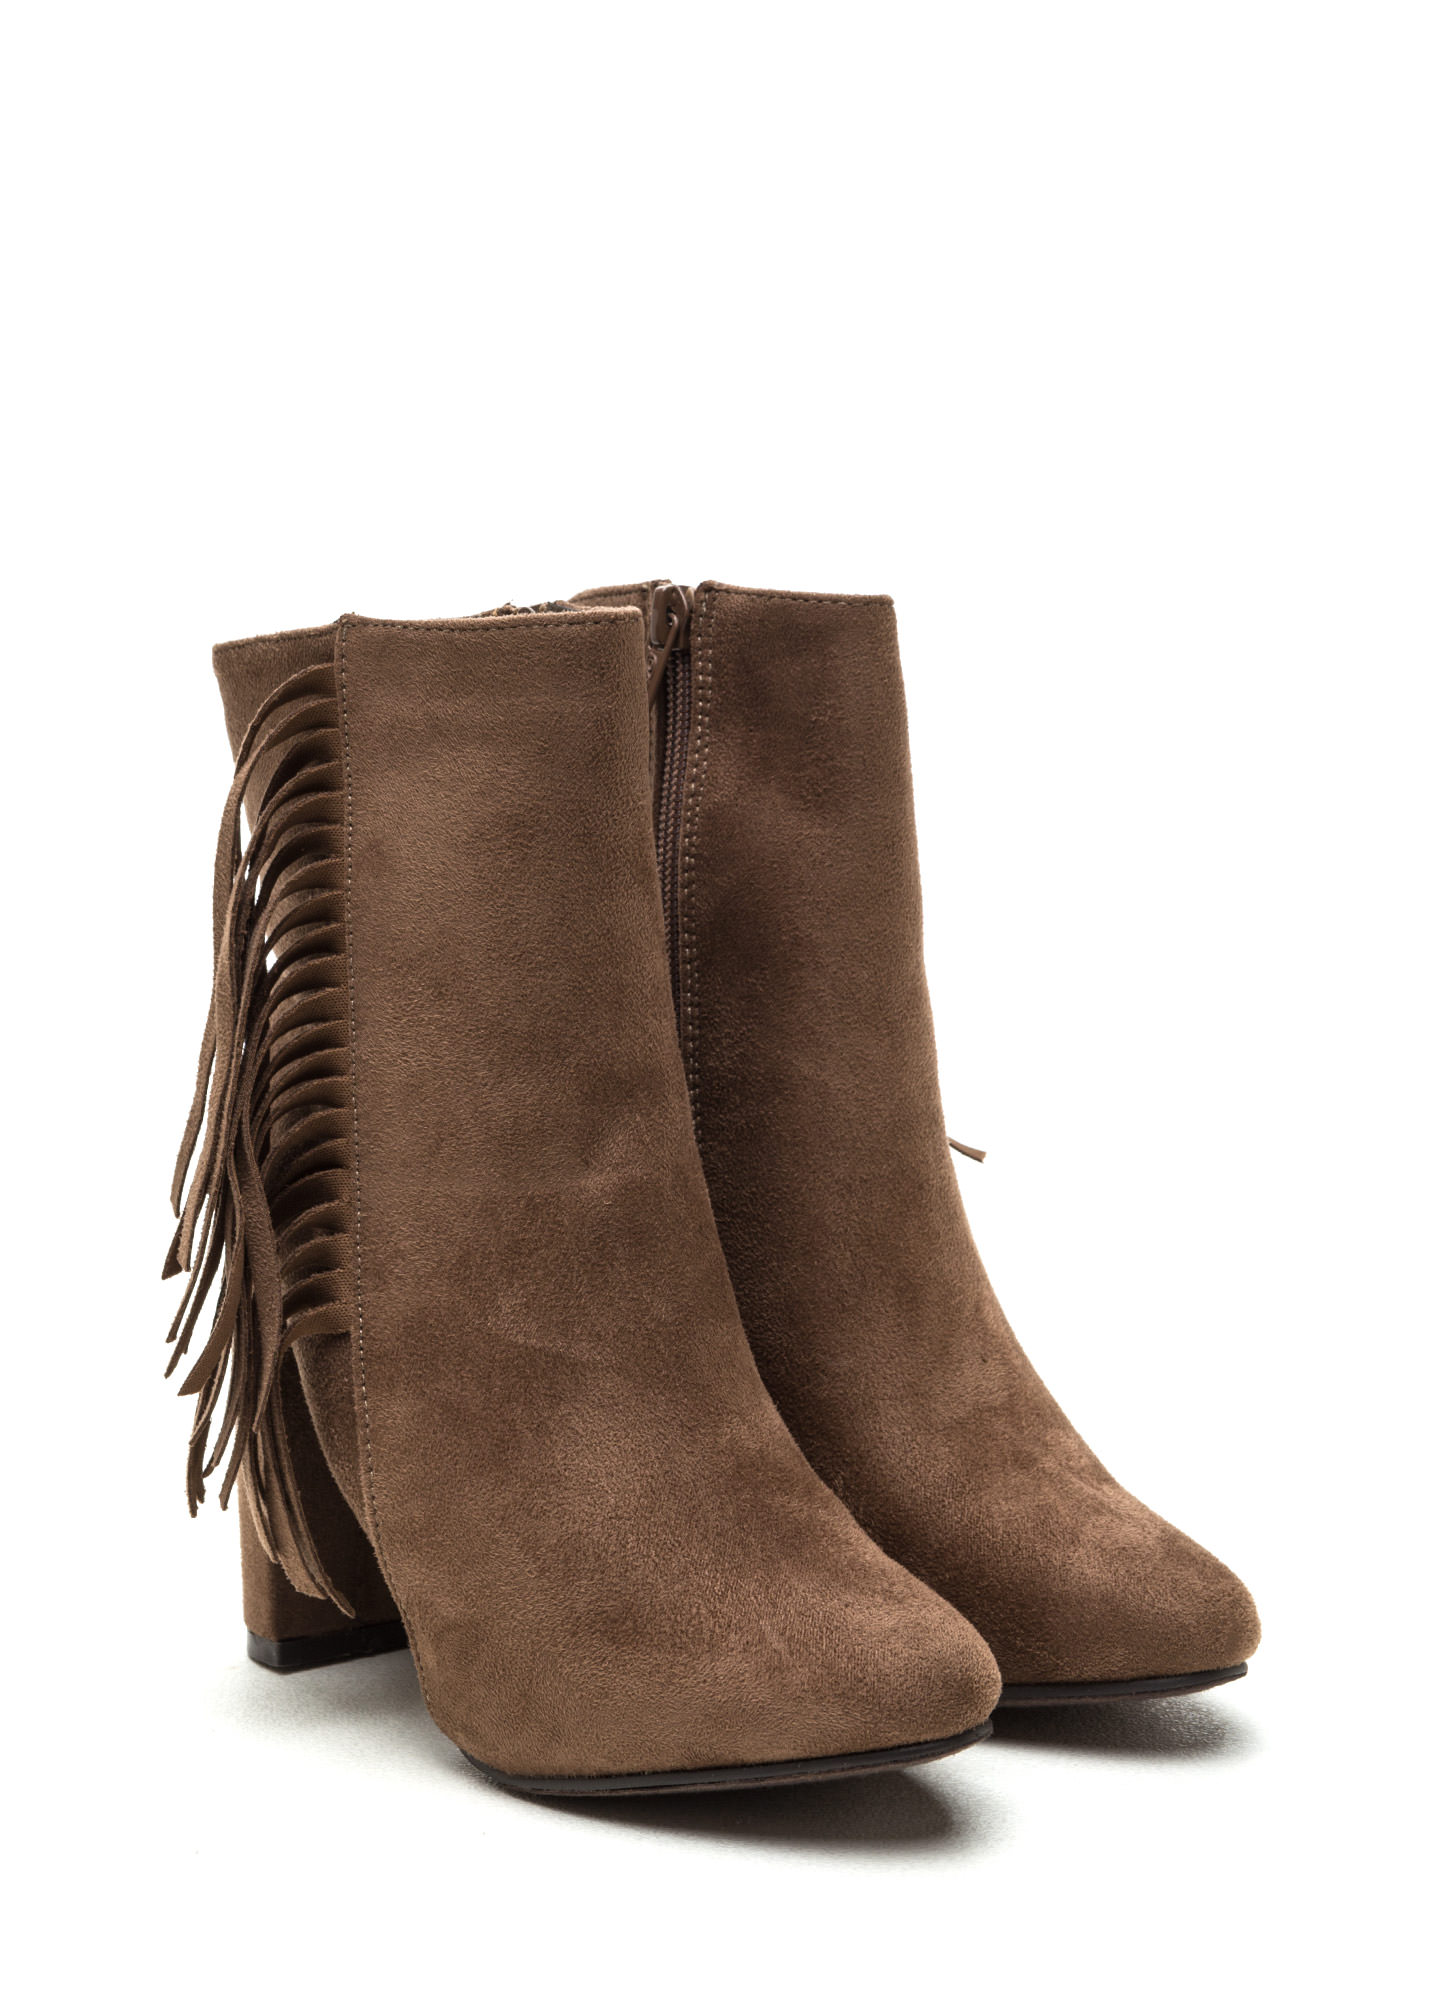 Fringe-Off Chunky Faux Suede Booties TAUPE